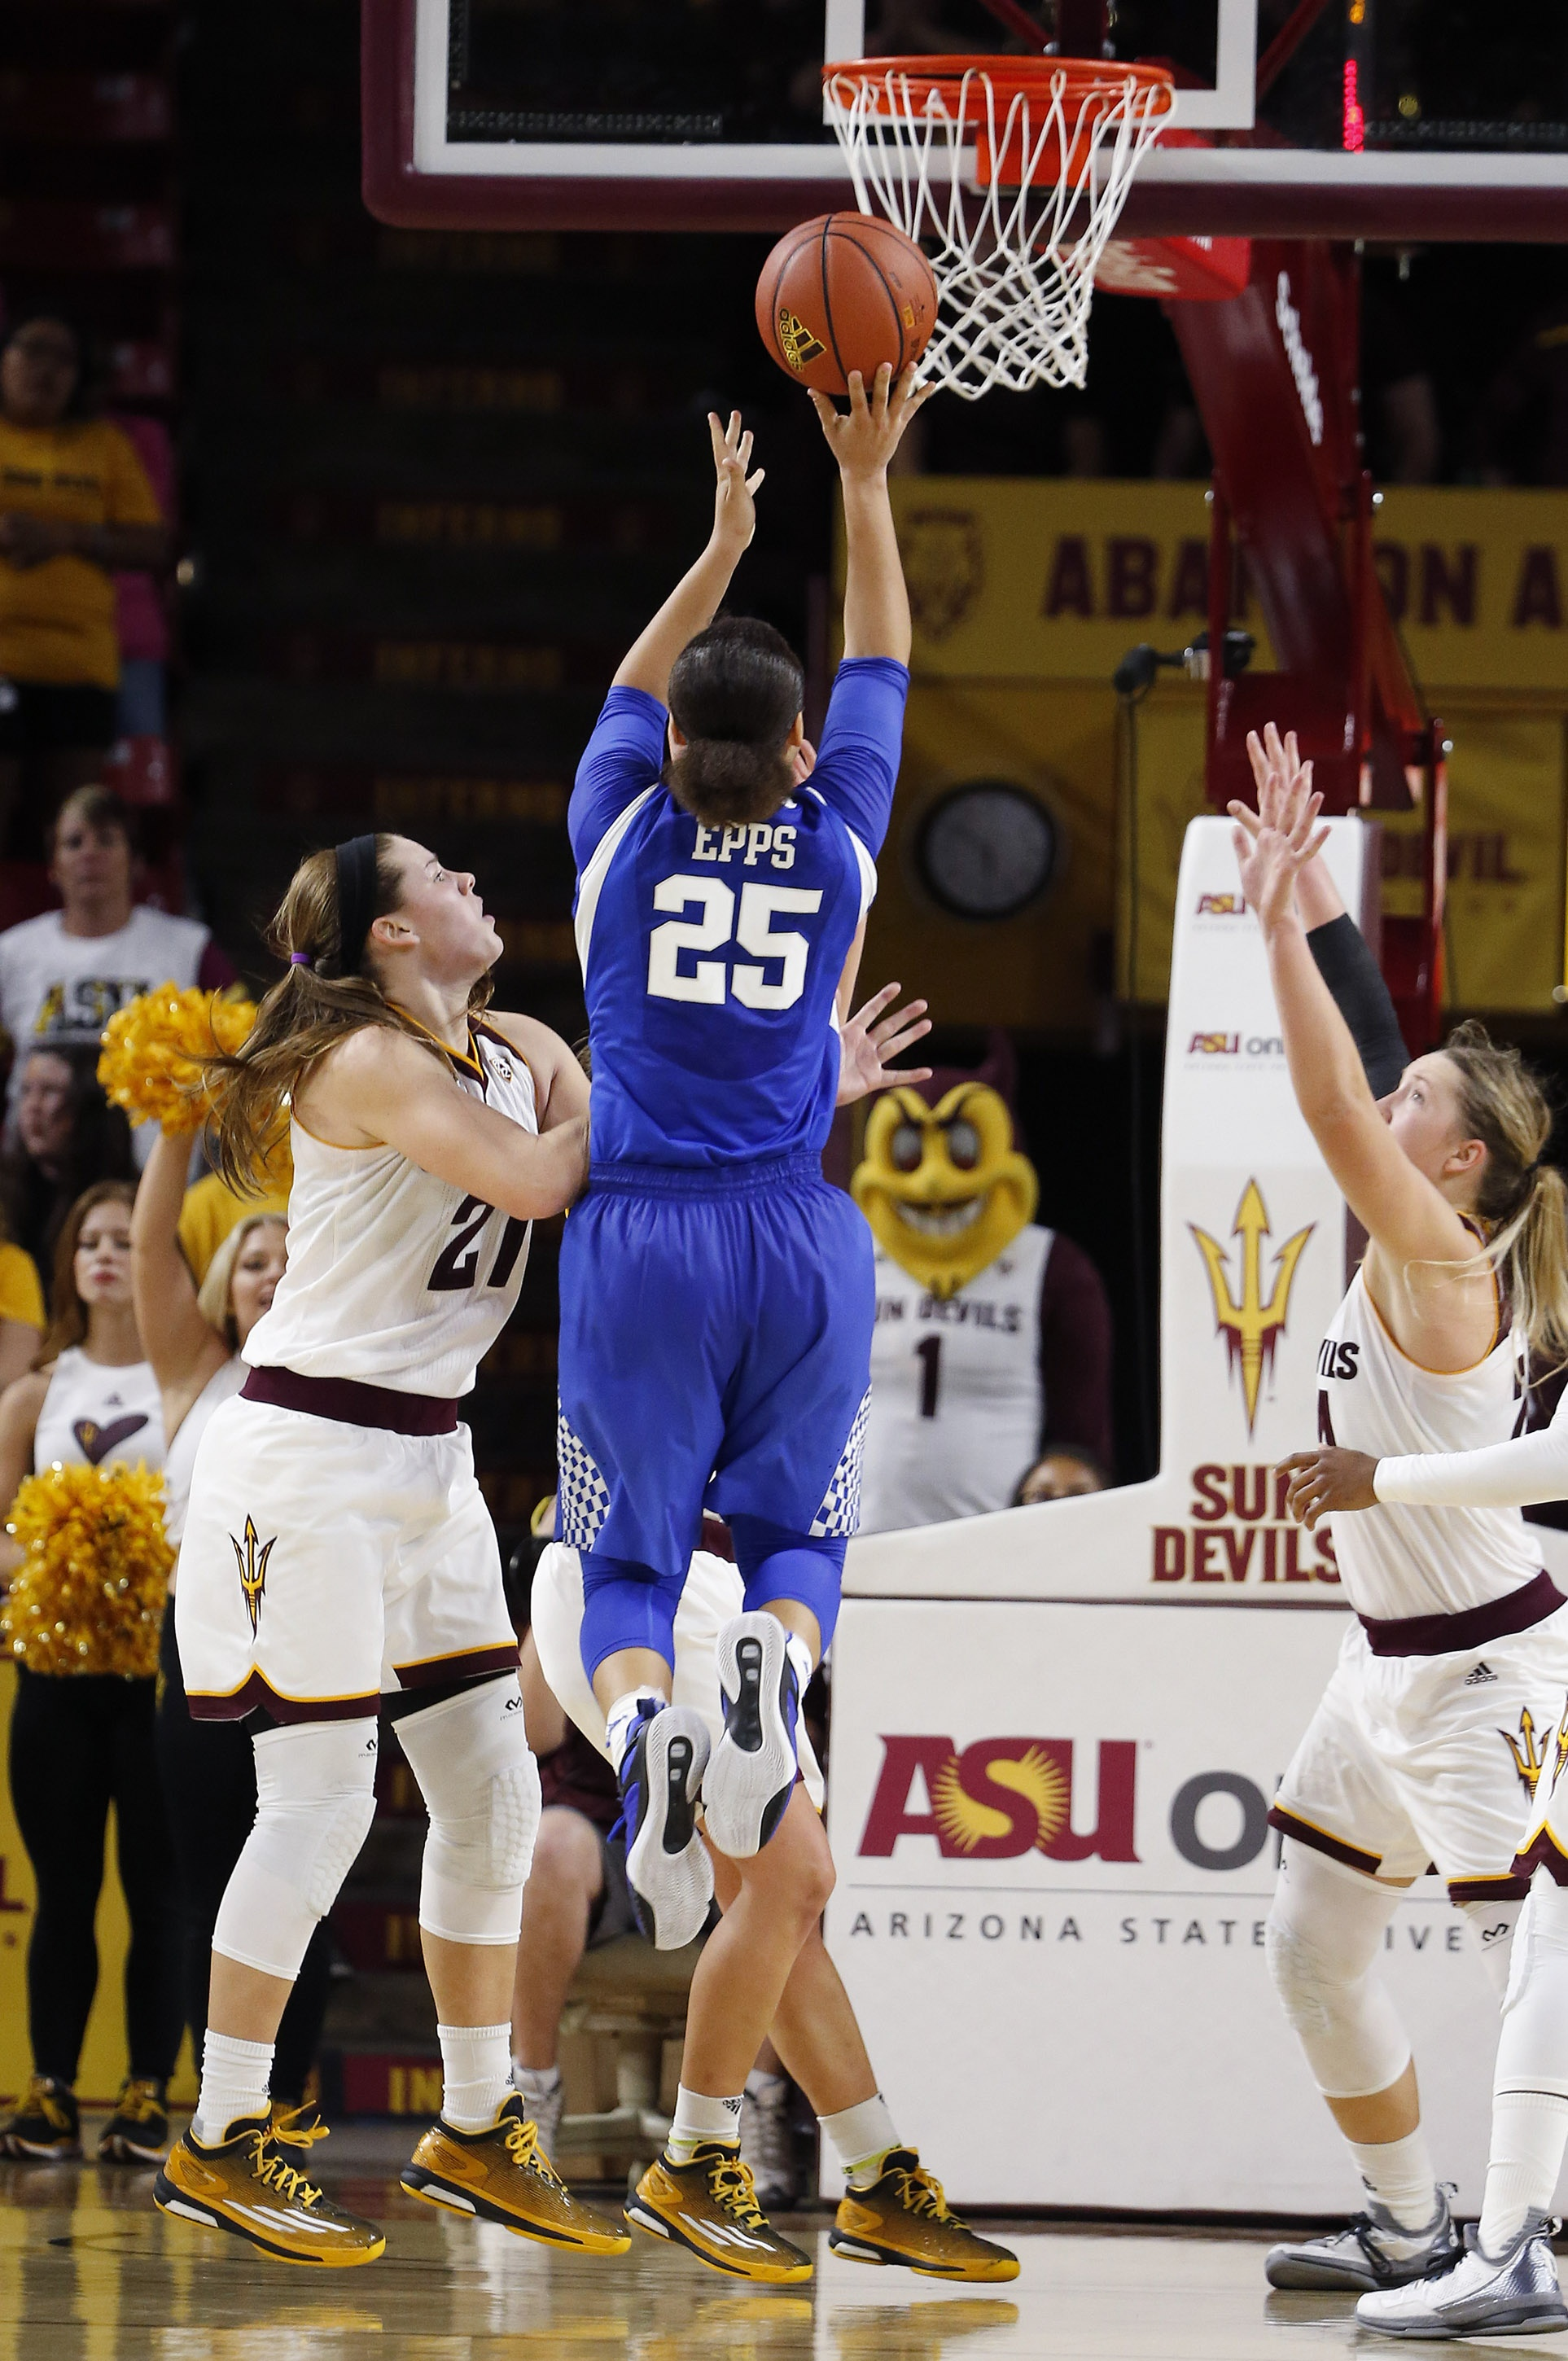 Kentucky's Makayla Epps (25) gets off a shot between Arizona State's Sophie Brunner (21) and Kelsey Moos, right, during overtime of an NCAA women's college basketball game Sunday, Nov. 15, 2015, in Tempe, Ariz. Kentucky defeated Arizona State 68-64 in ove